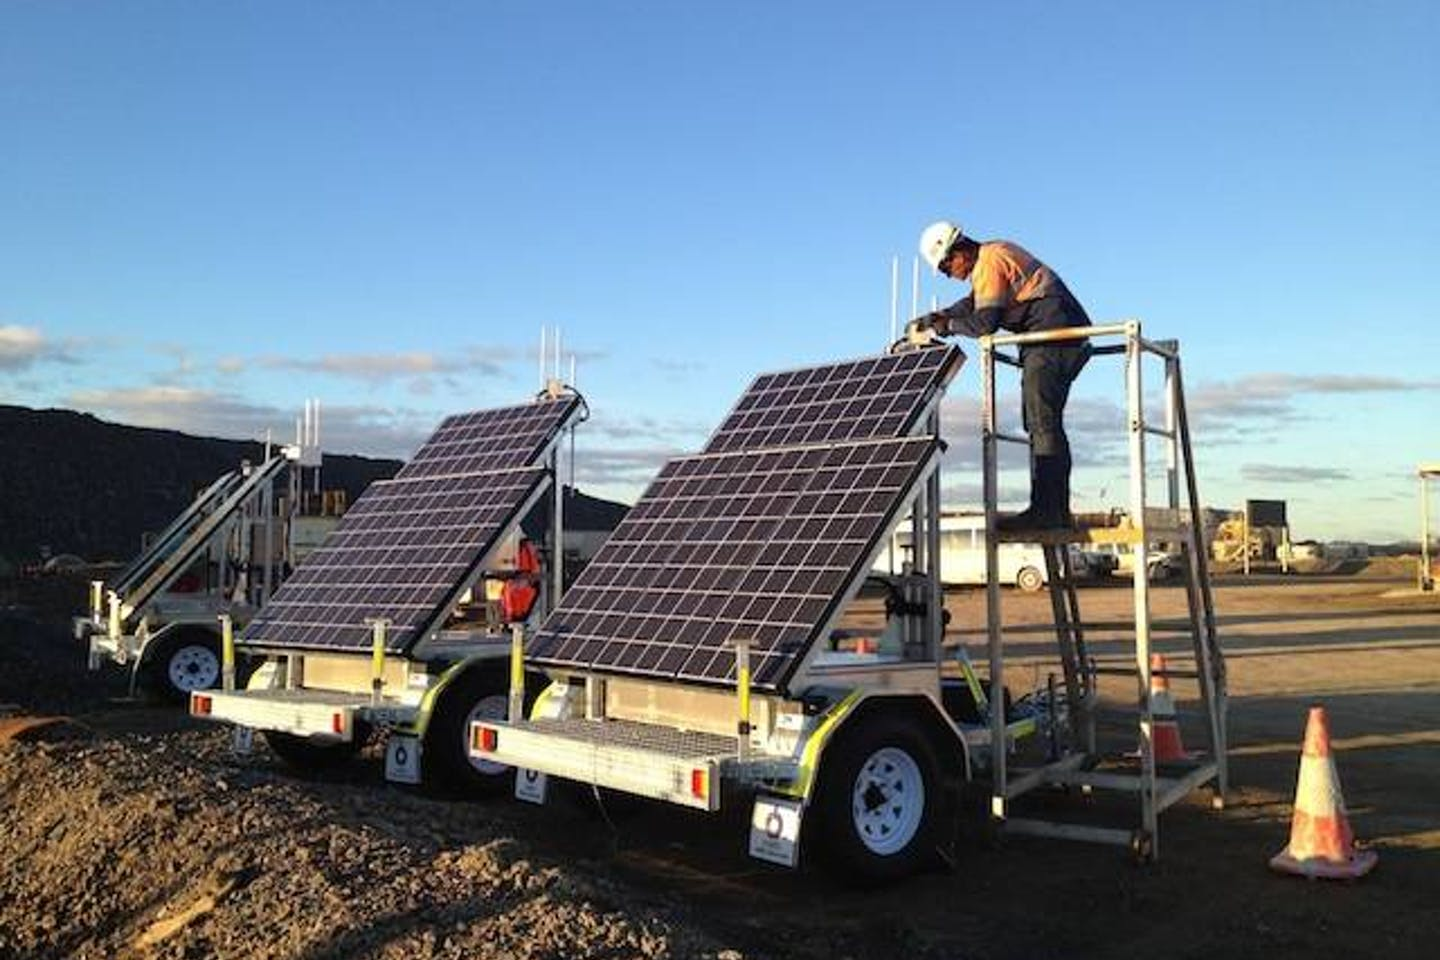 Barrick Gold solar-powered trailer with wireless mesh network